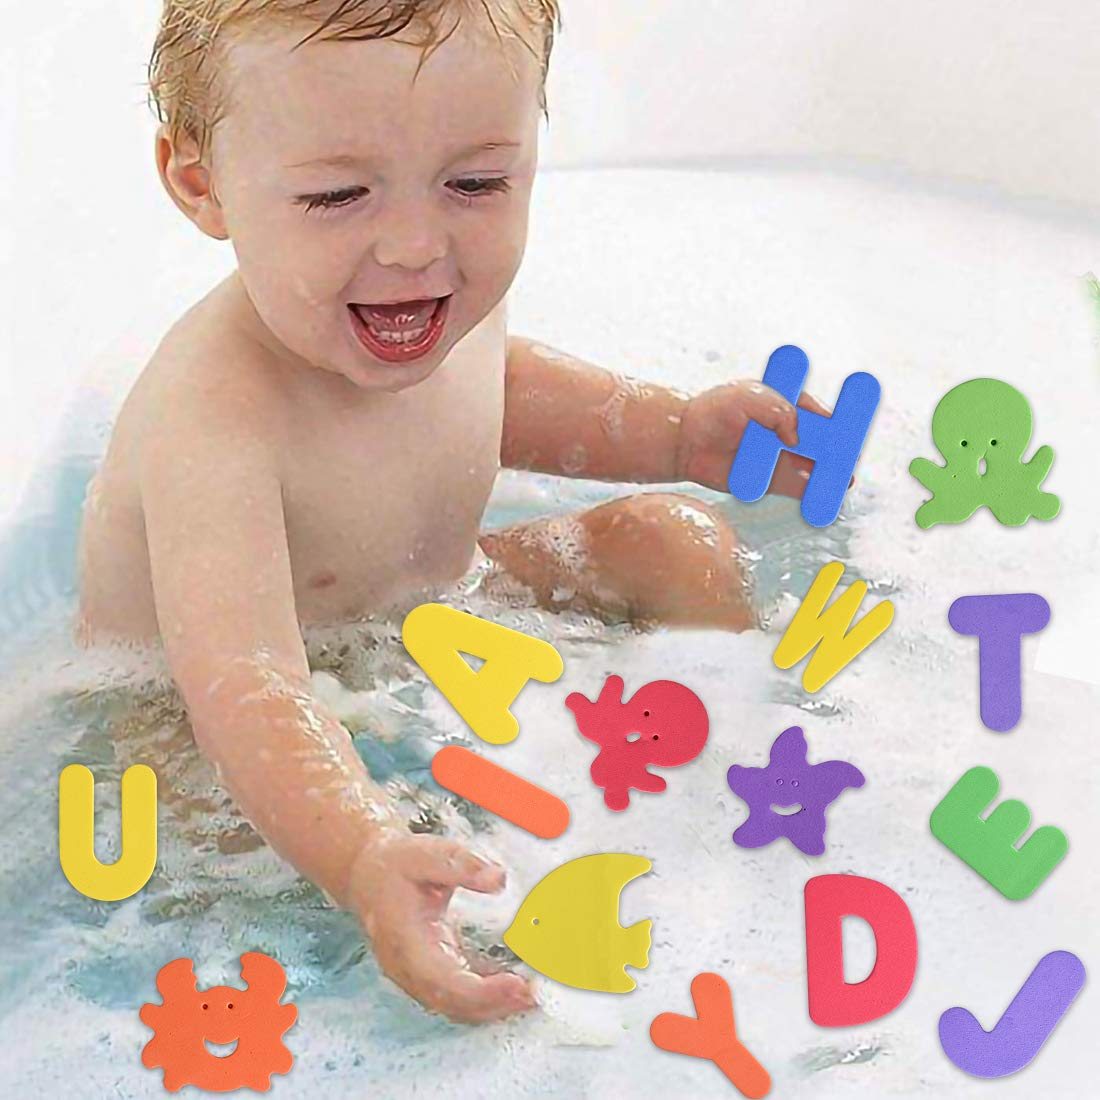 Max Fun 61 Pcs EVA Educational Bath Letters Numbers and Sea Life Bath Toys with Toy Organizer Siauction